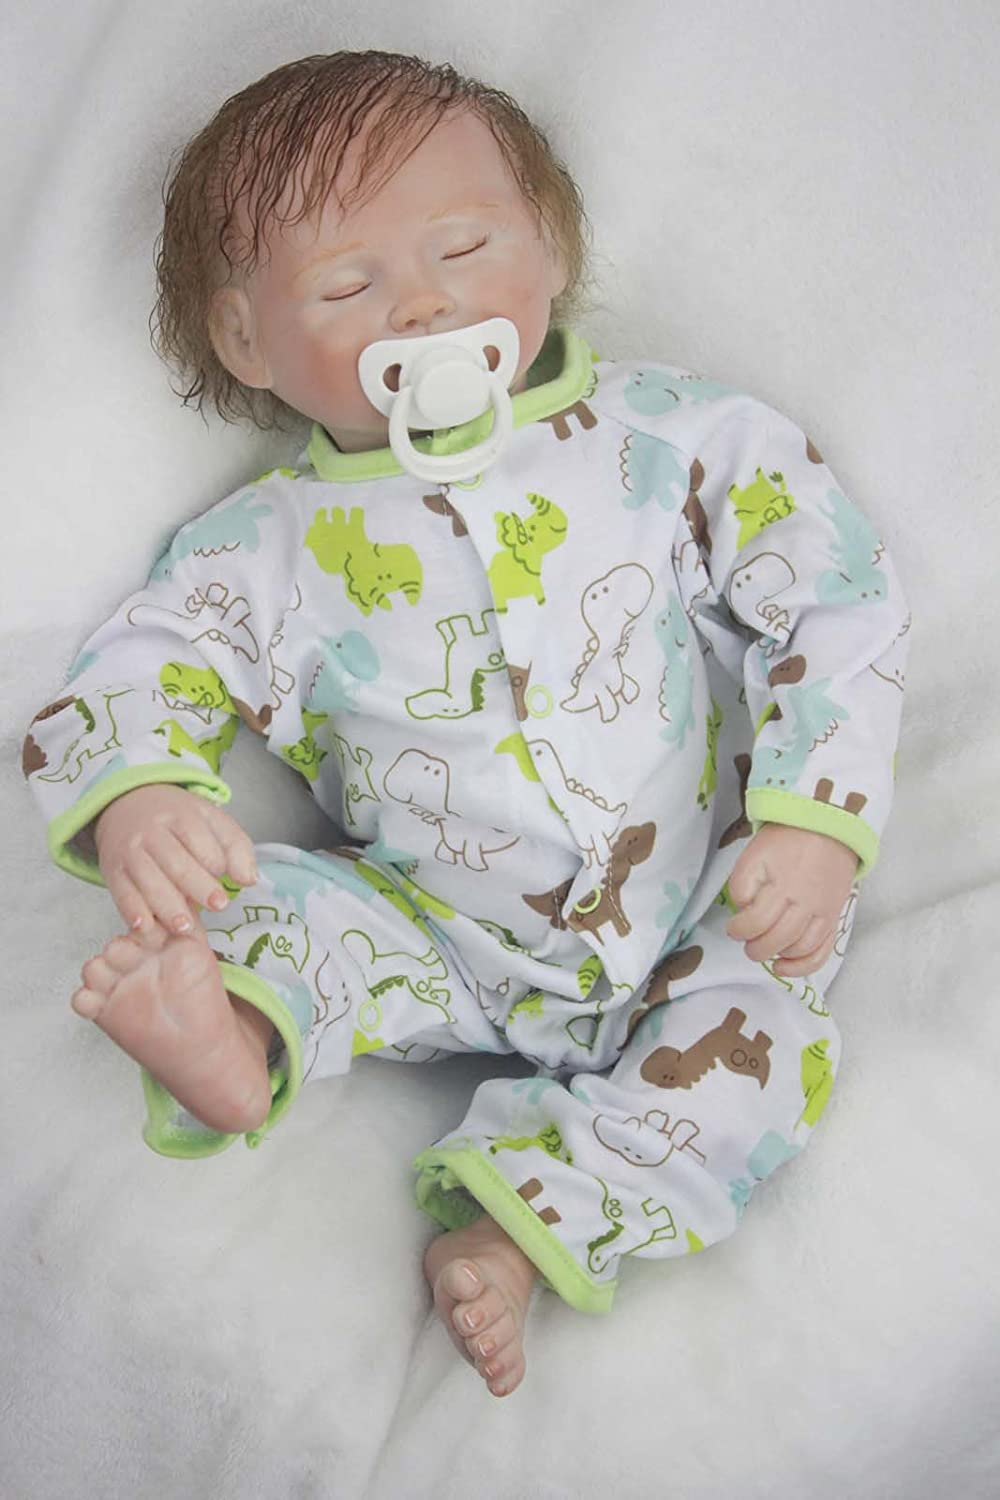 Sweet Dreams Dino Terabithia Rare Alive Reborn Baby Doll,18 inch Gentle Touch Vinyl Like Silicone Baby Doll